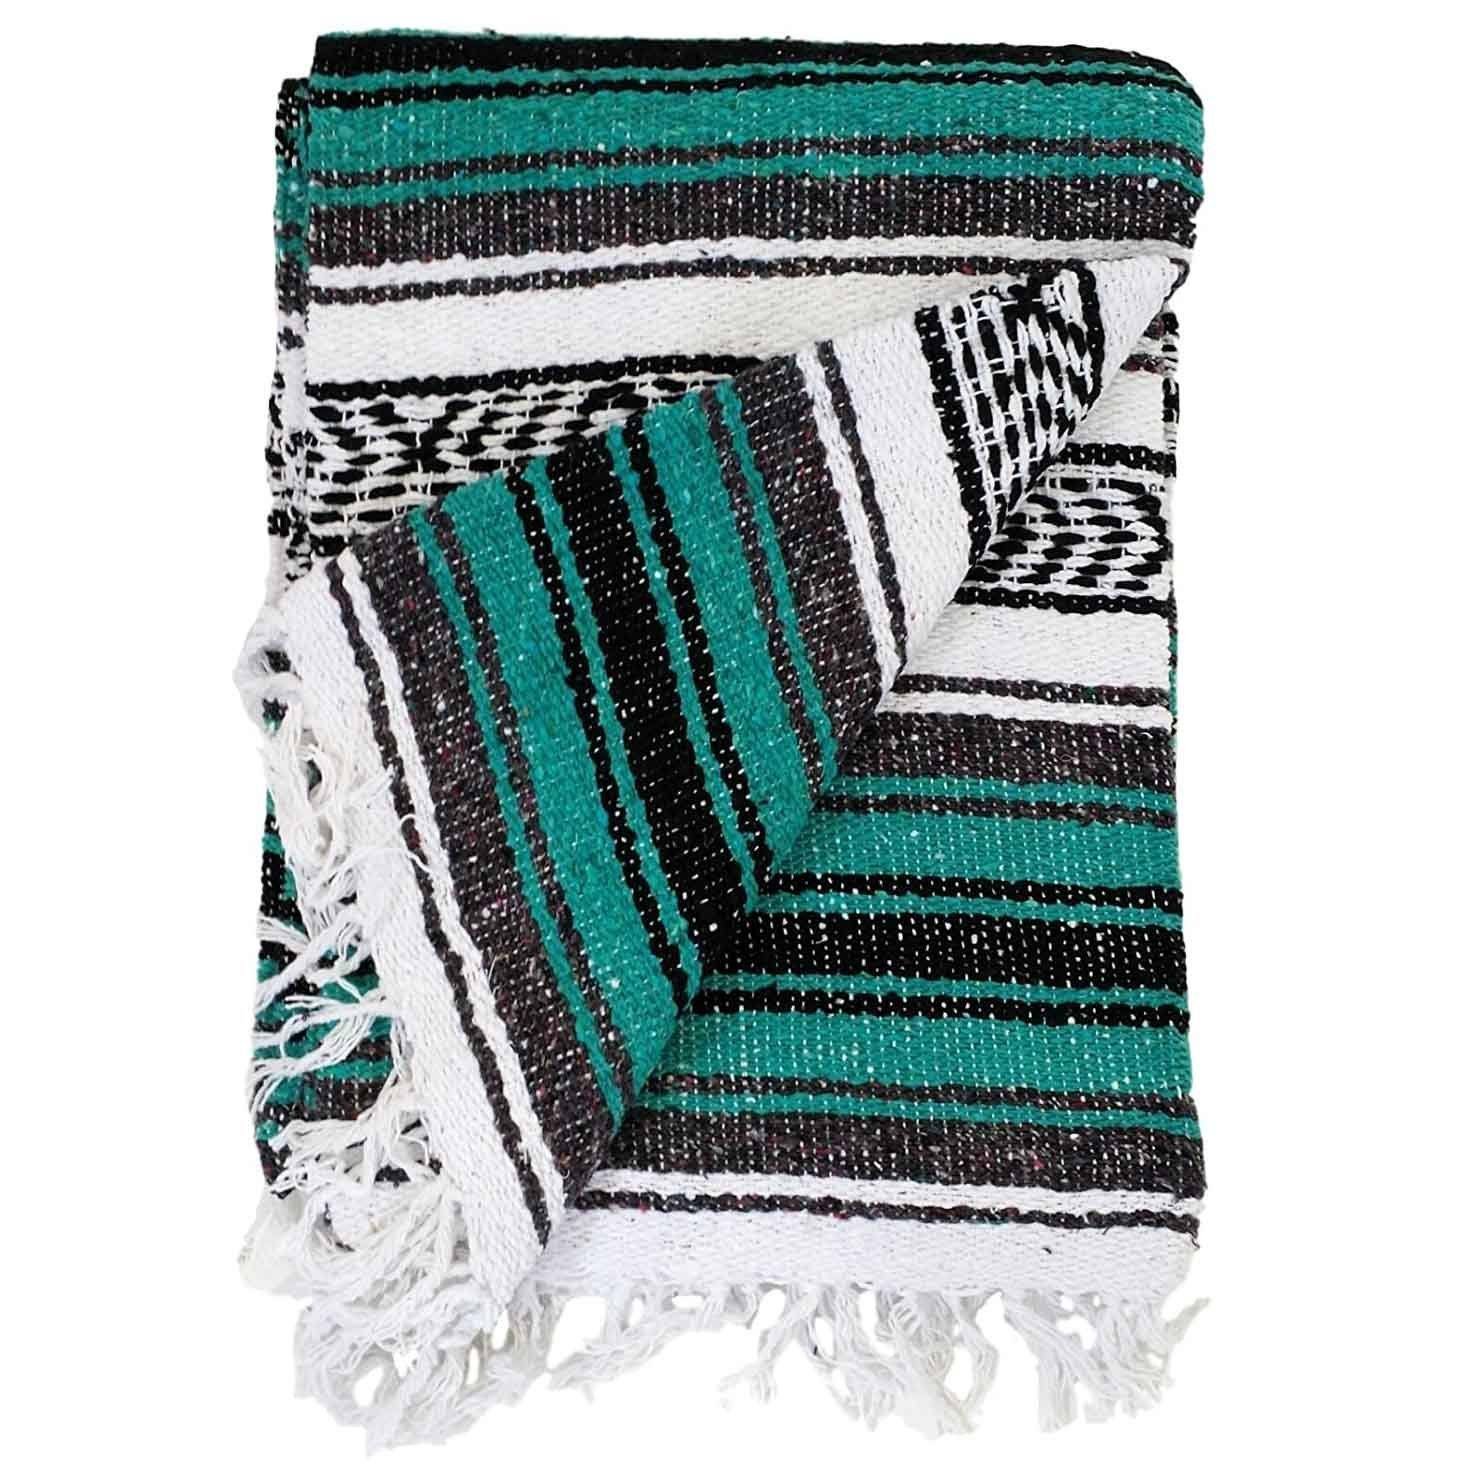 Copy of One Ocean XL Beach Blanket - Sea Green